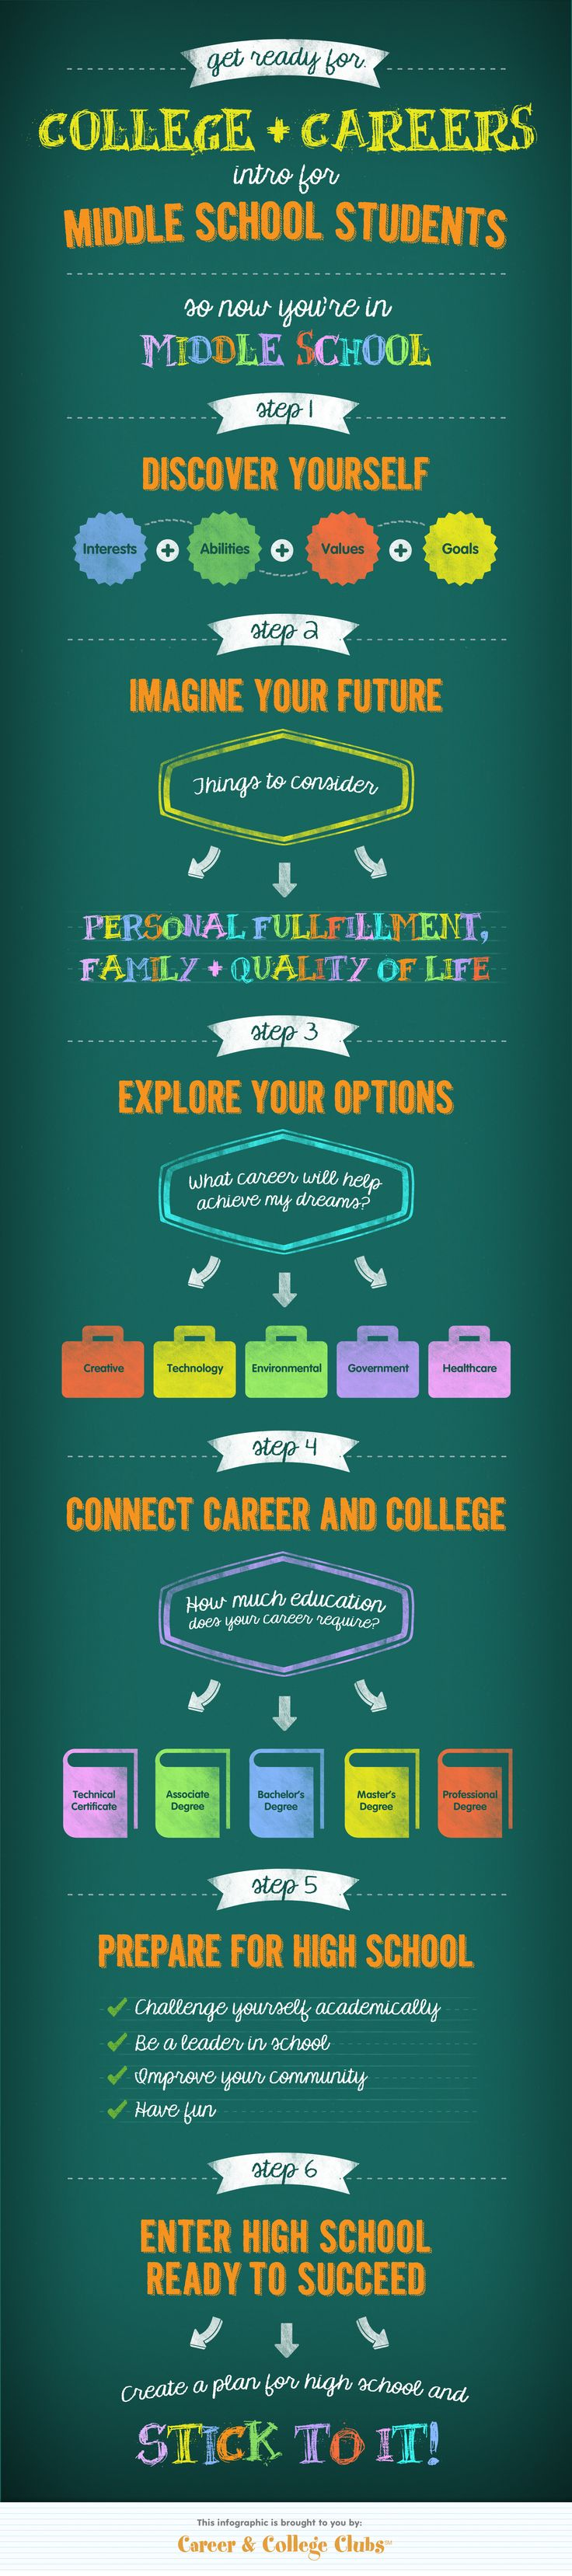 ideas about high school counseling high career college clubs has designed a fun and easy to follow infographic that